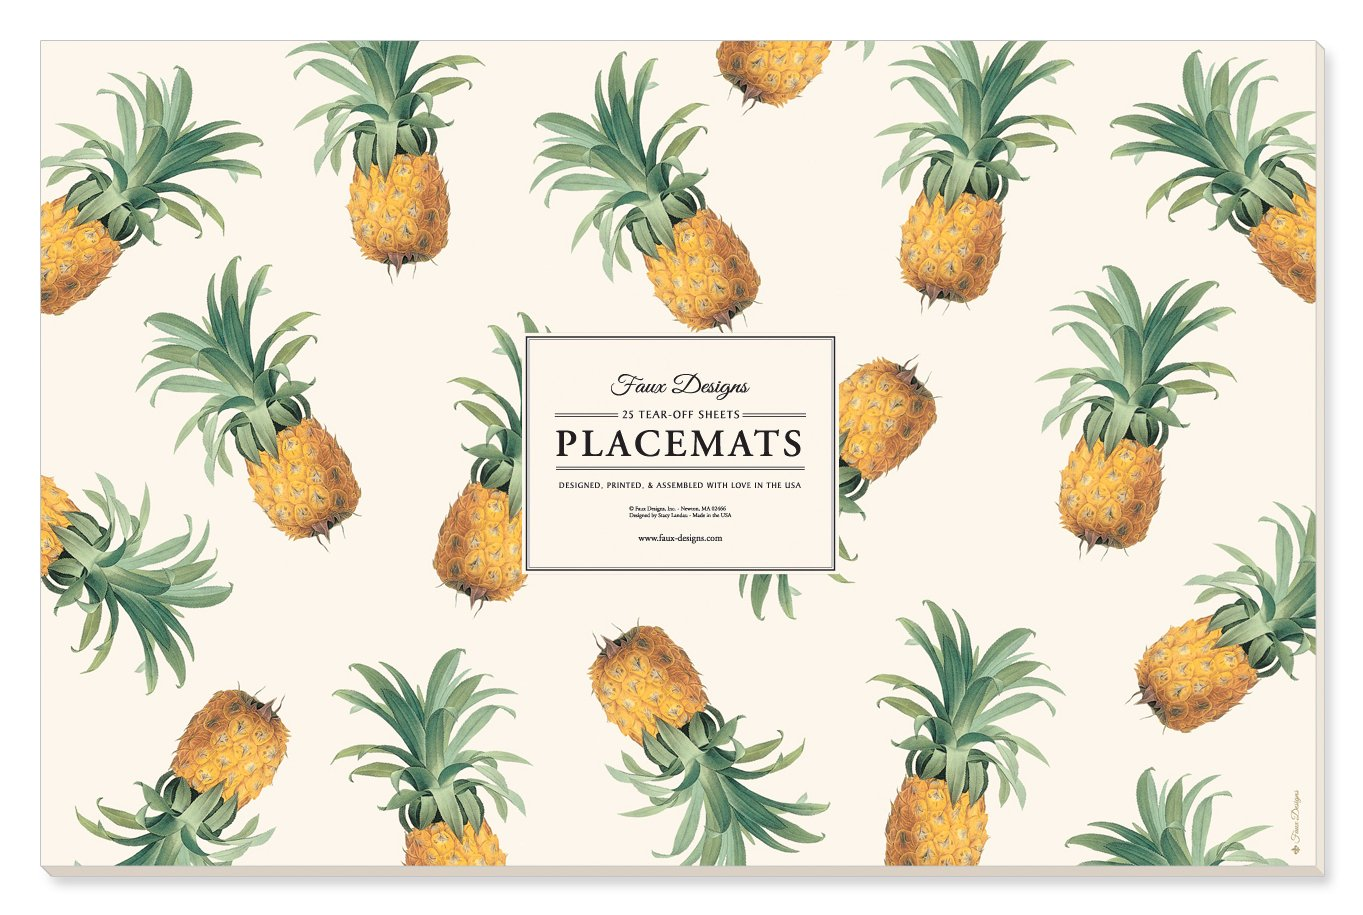 Faux Designs Paper Placemats - Pineapple